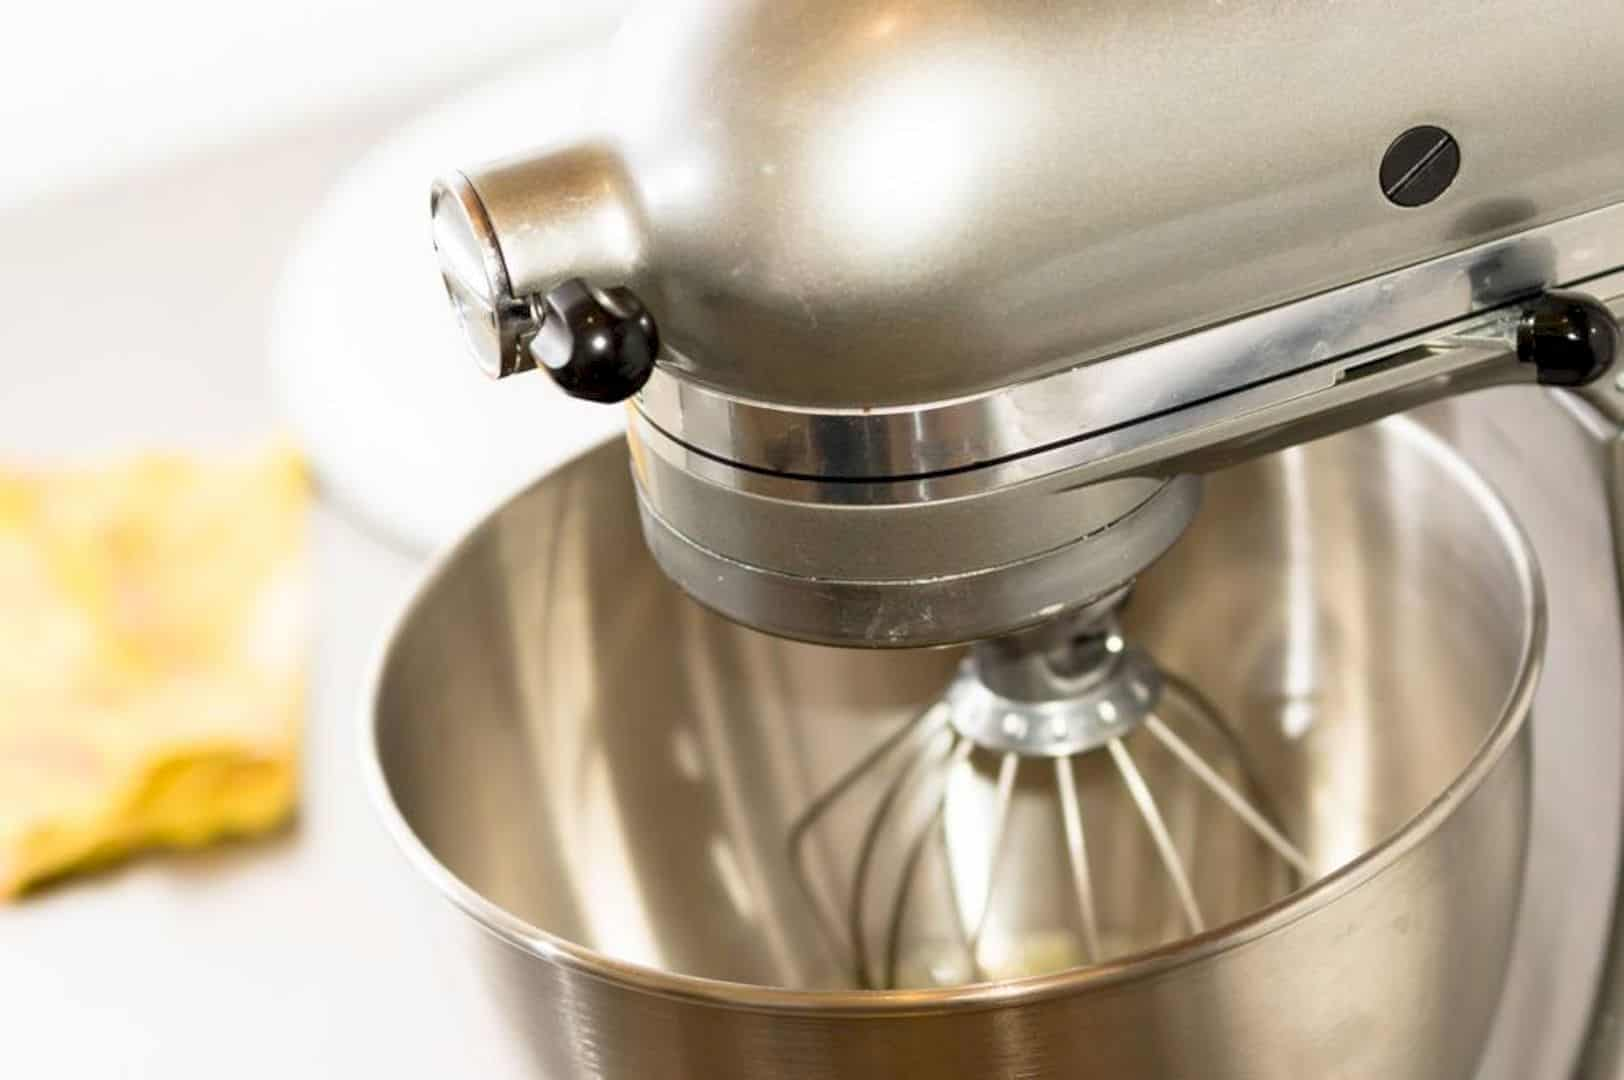 Kitchenaid Artisan Series 5 Mixer 2